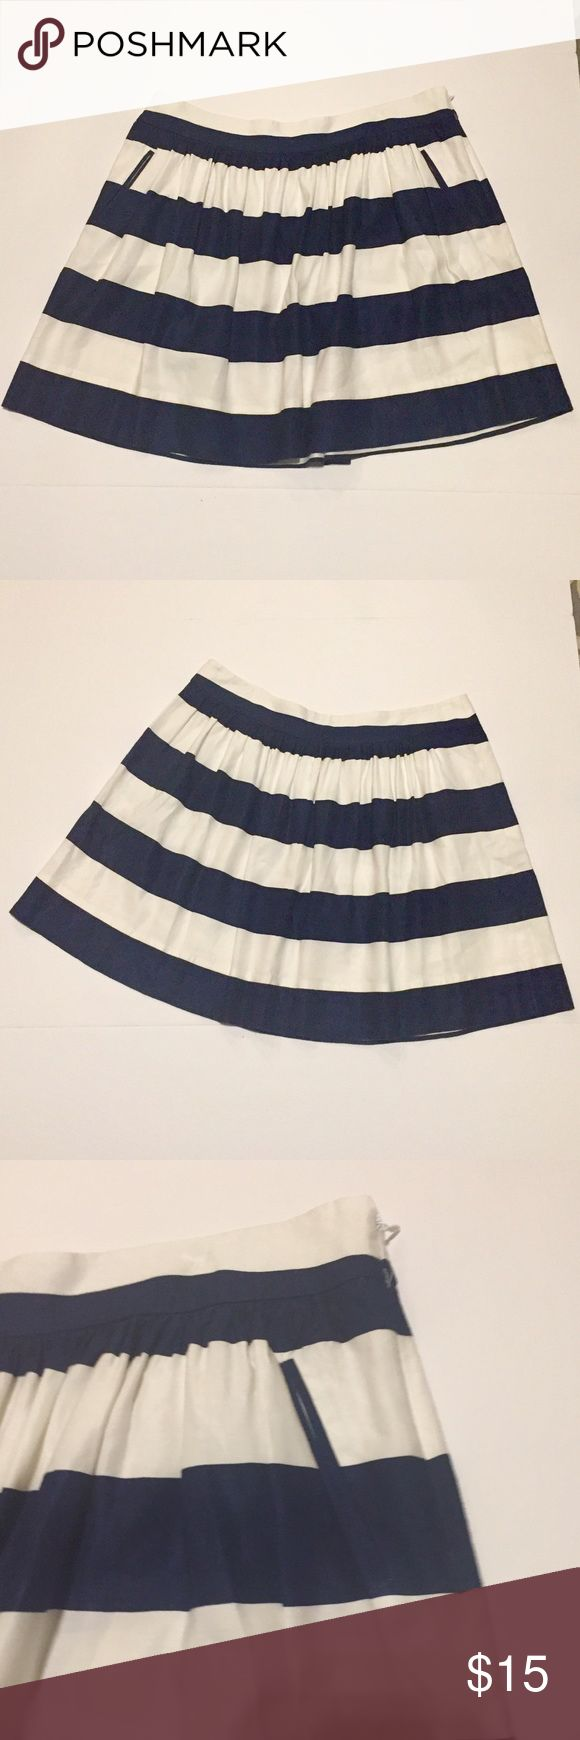 Cynthia Rowley nautical skirt size 12 with pockets In excellent condition, this skirt is the perfect addition to a well rounded closet. Size 12 Cynthia Rowley Skirts A-Line or Full